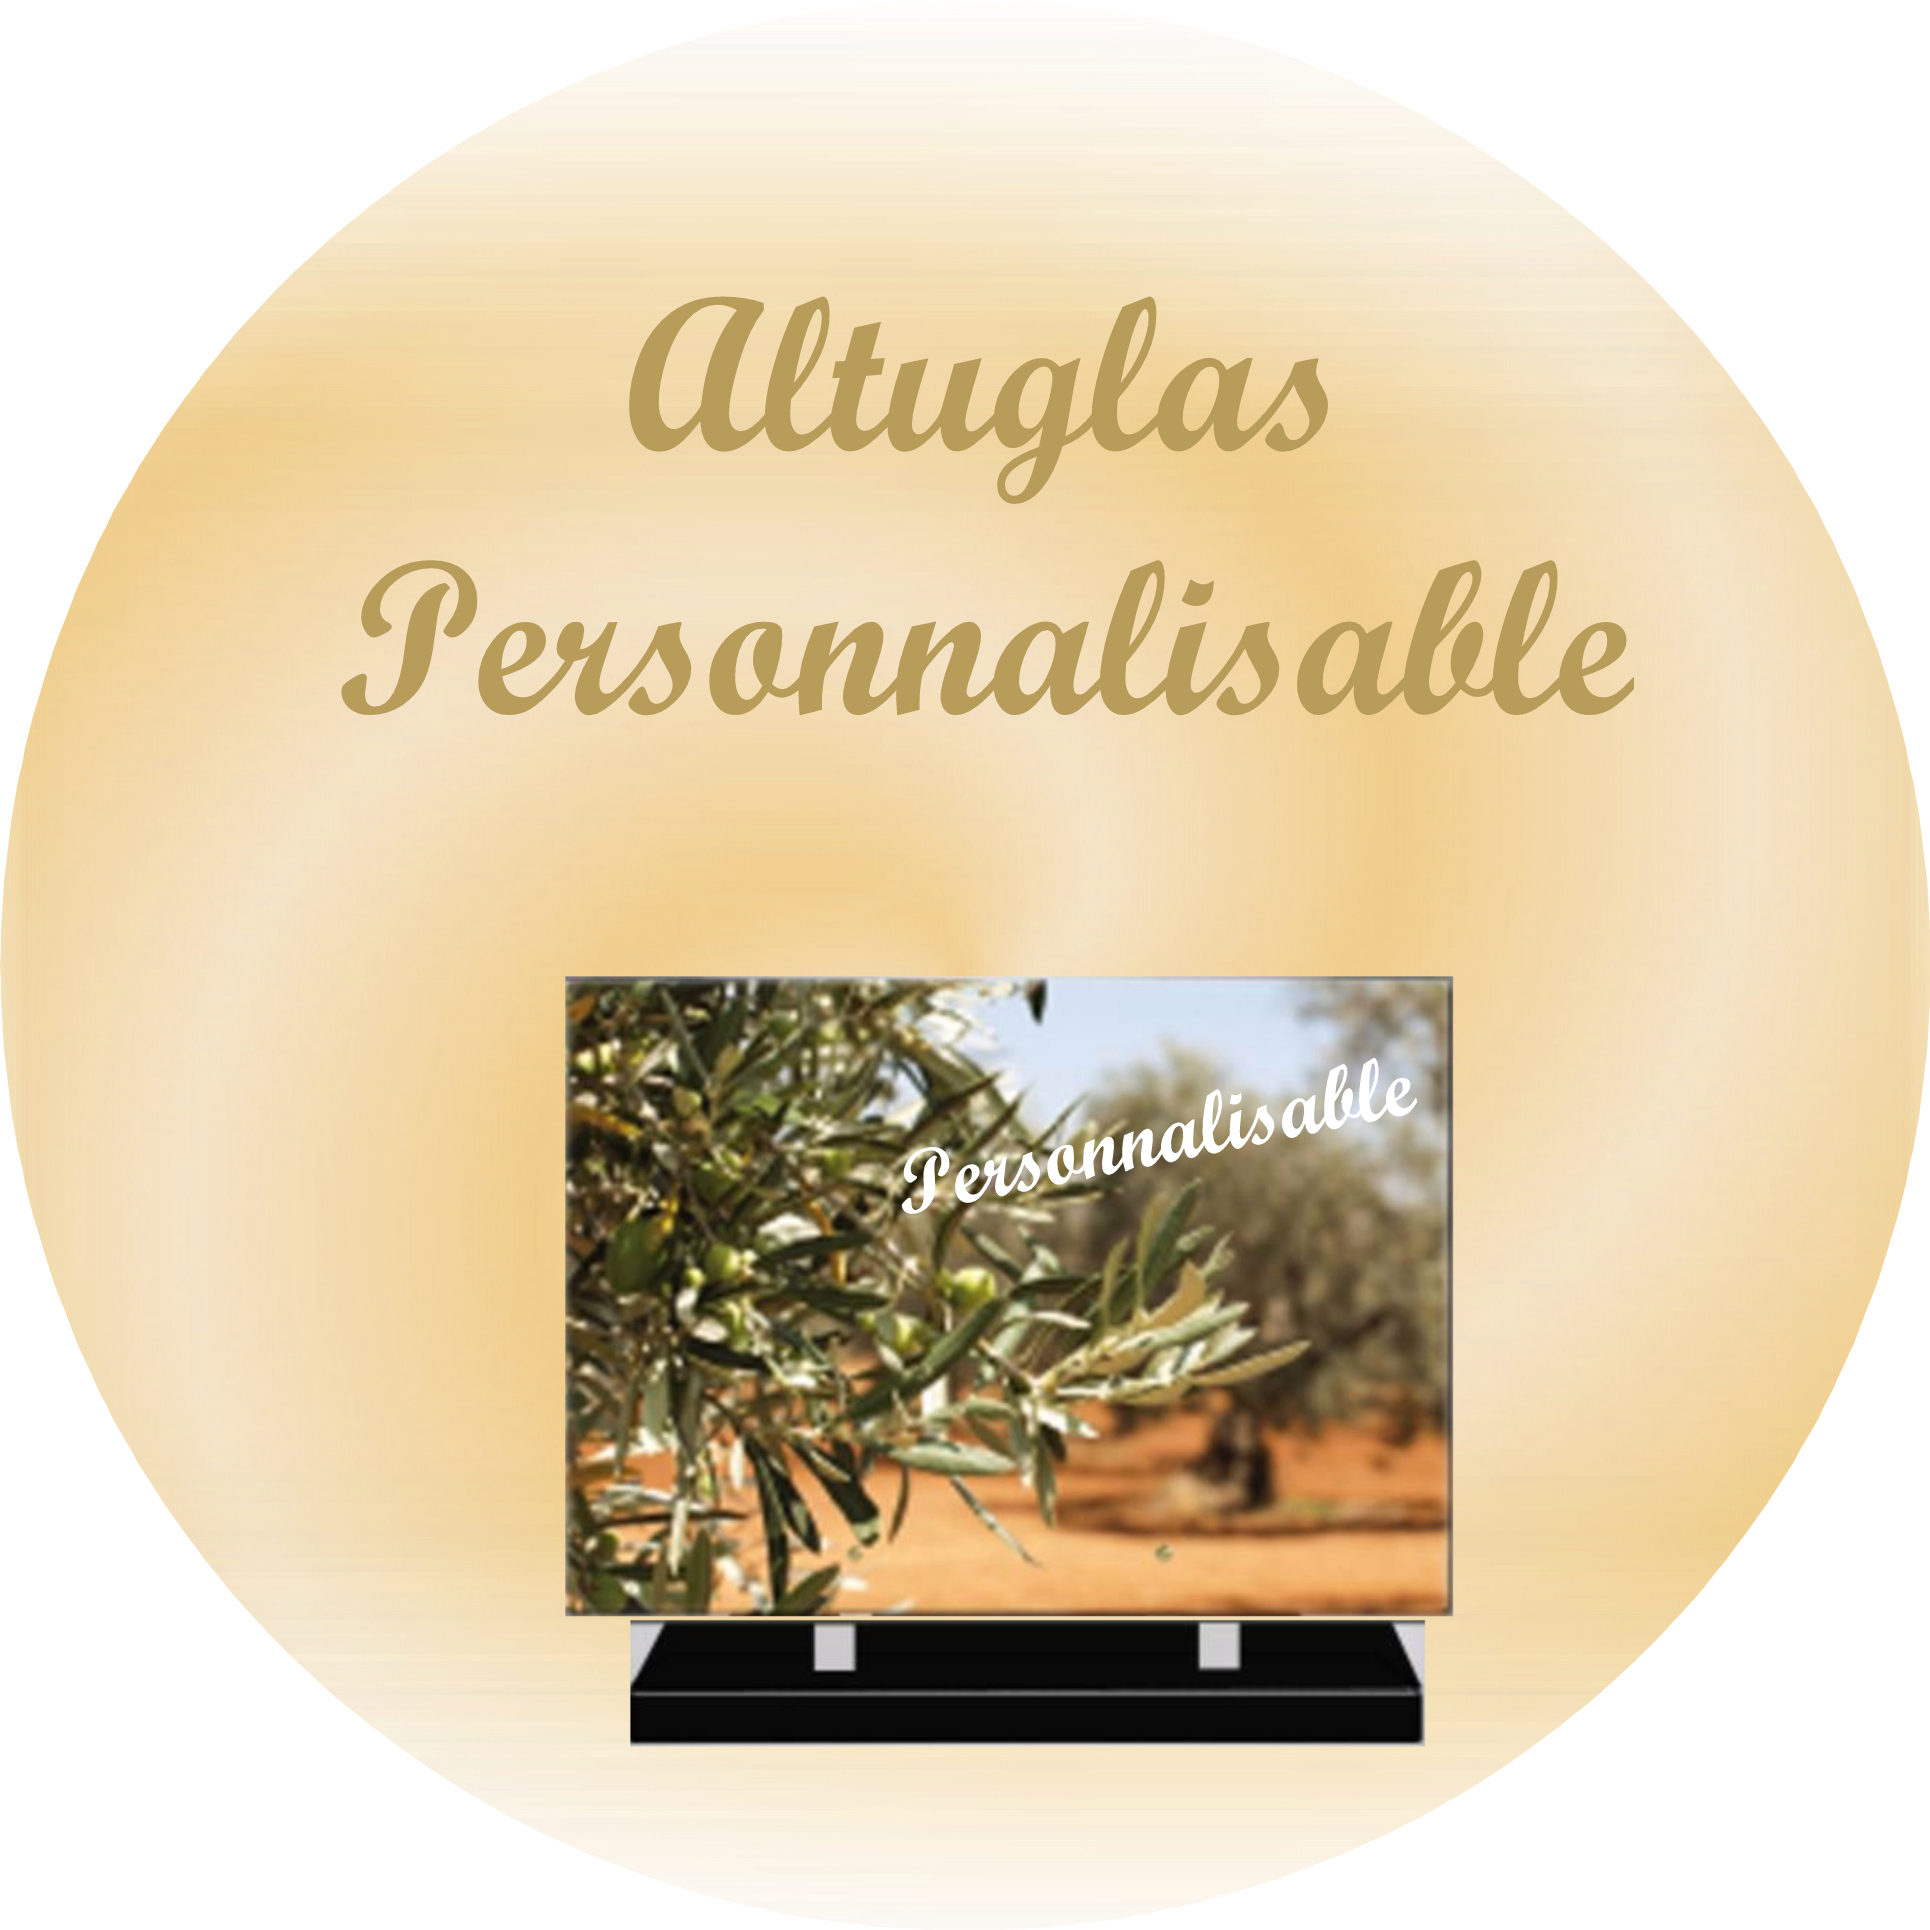 PLAQUES FUNERAIRES MODERNES PERSONNALISABLES RECTANGLE JAYAT